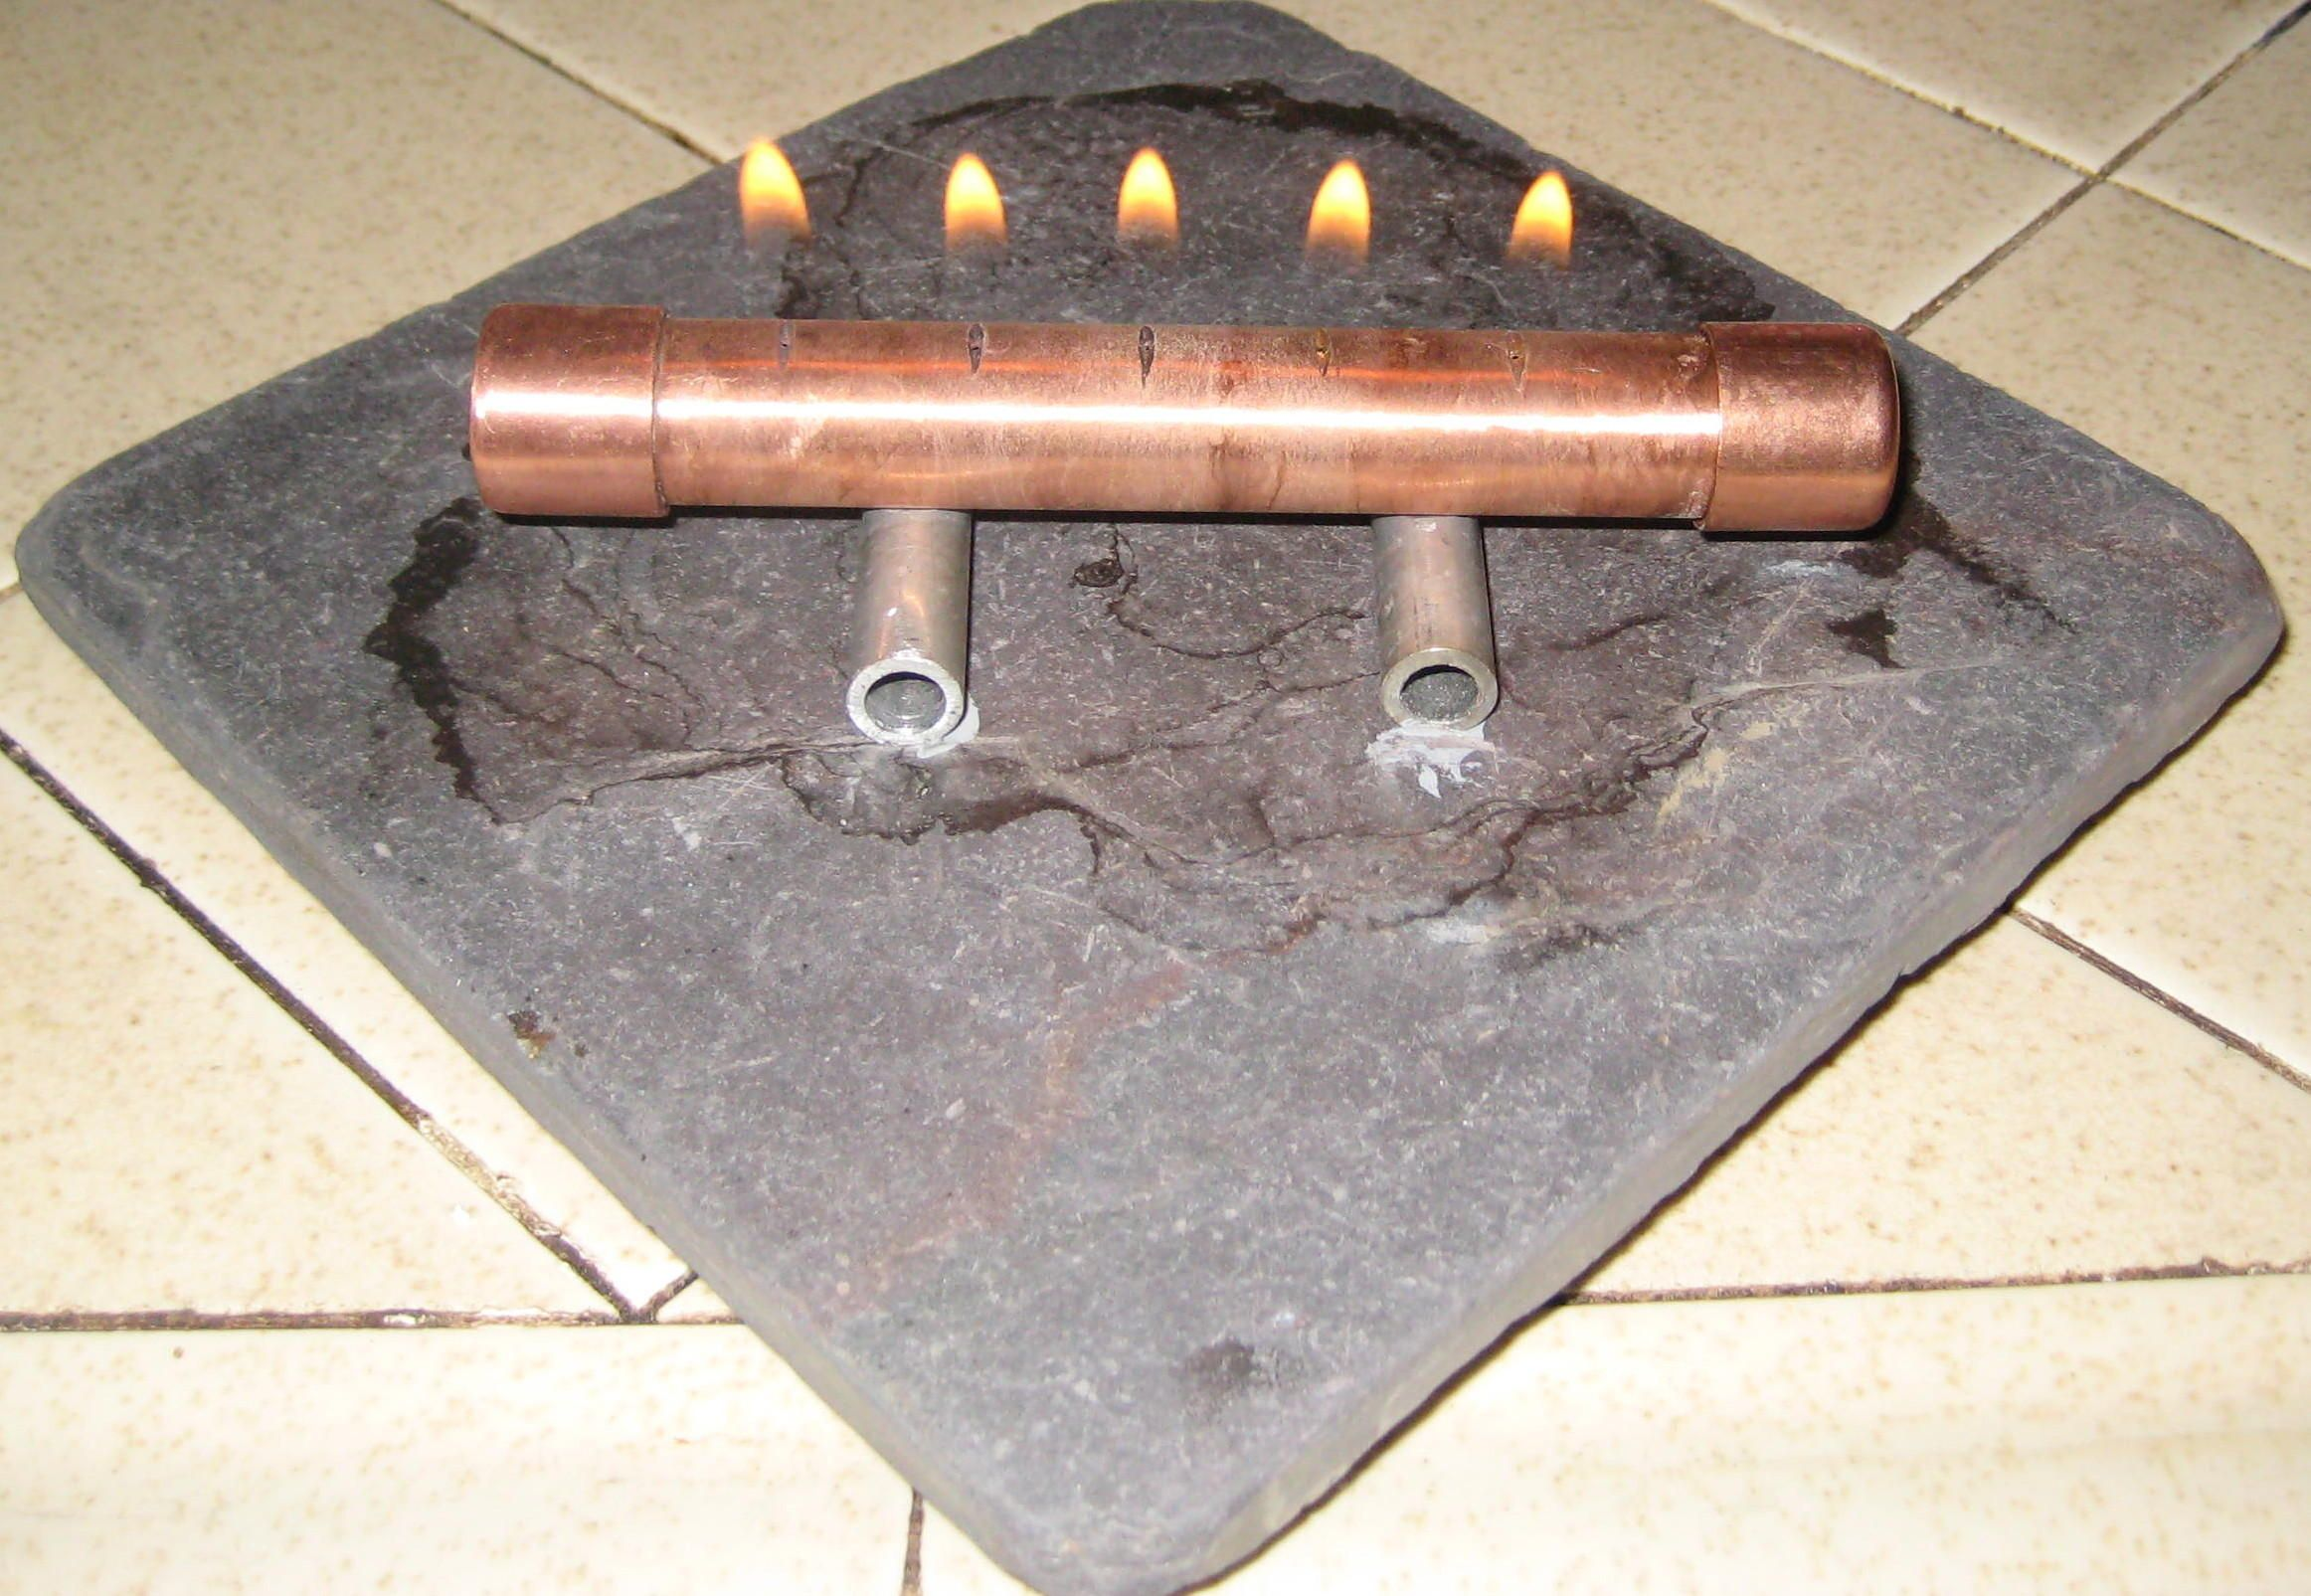 new project idea  outdoor fire pit  people who really build  - i really want to build an outdoor fire pit but for now i built this indoorfire pit from an instructablescom article